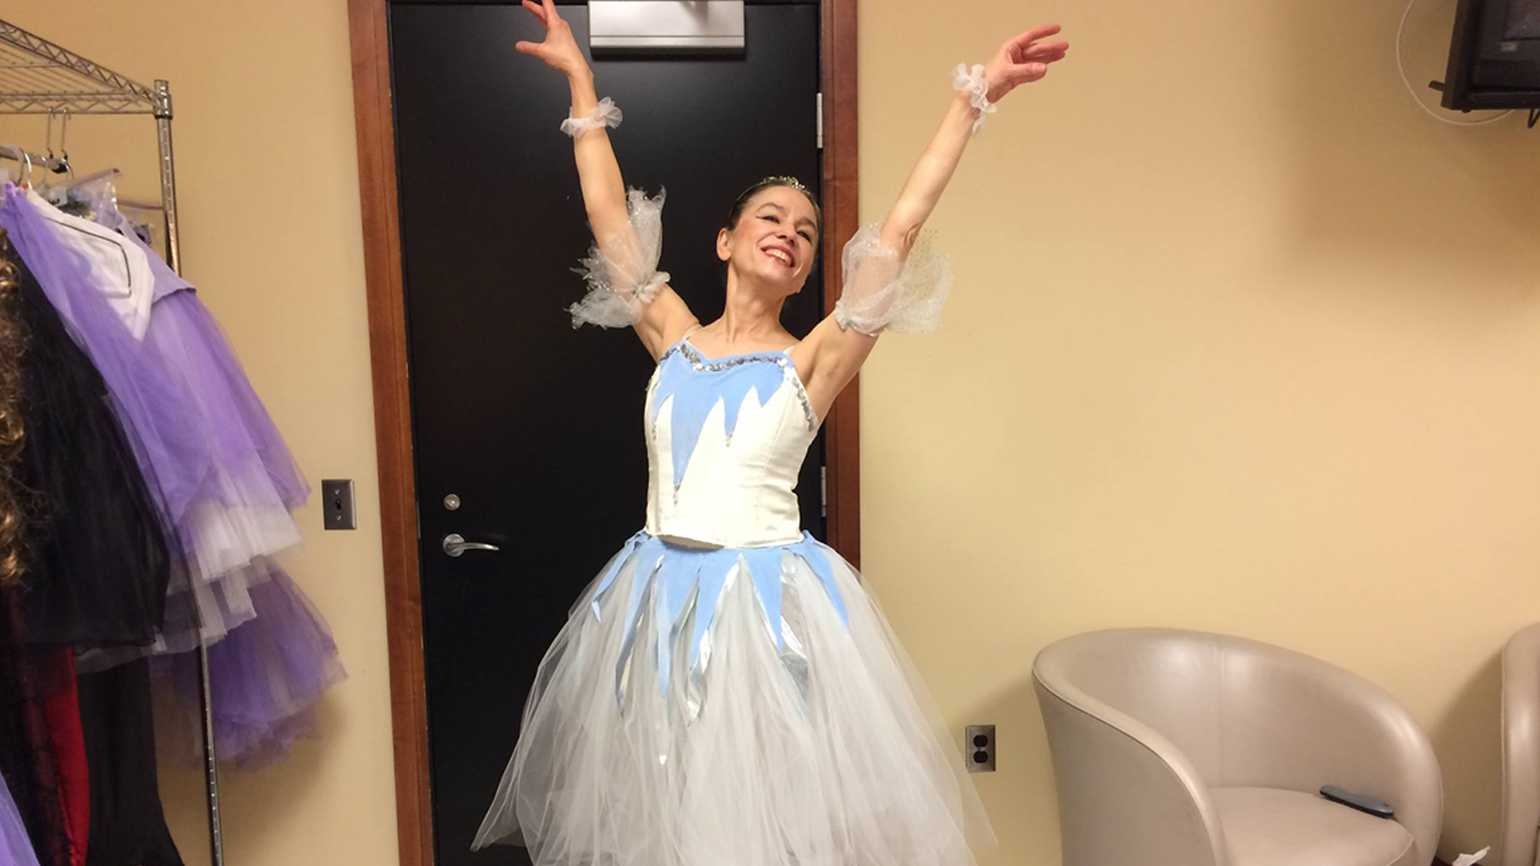 Deborah Novak strike a ballet pose in her dressing room.